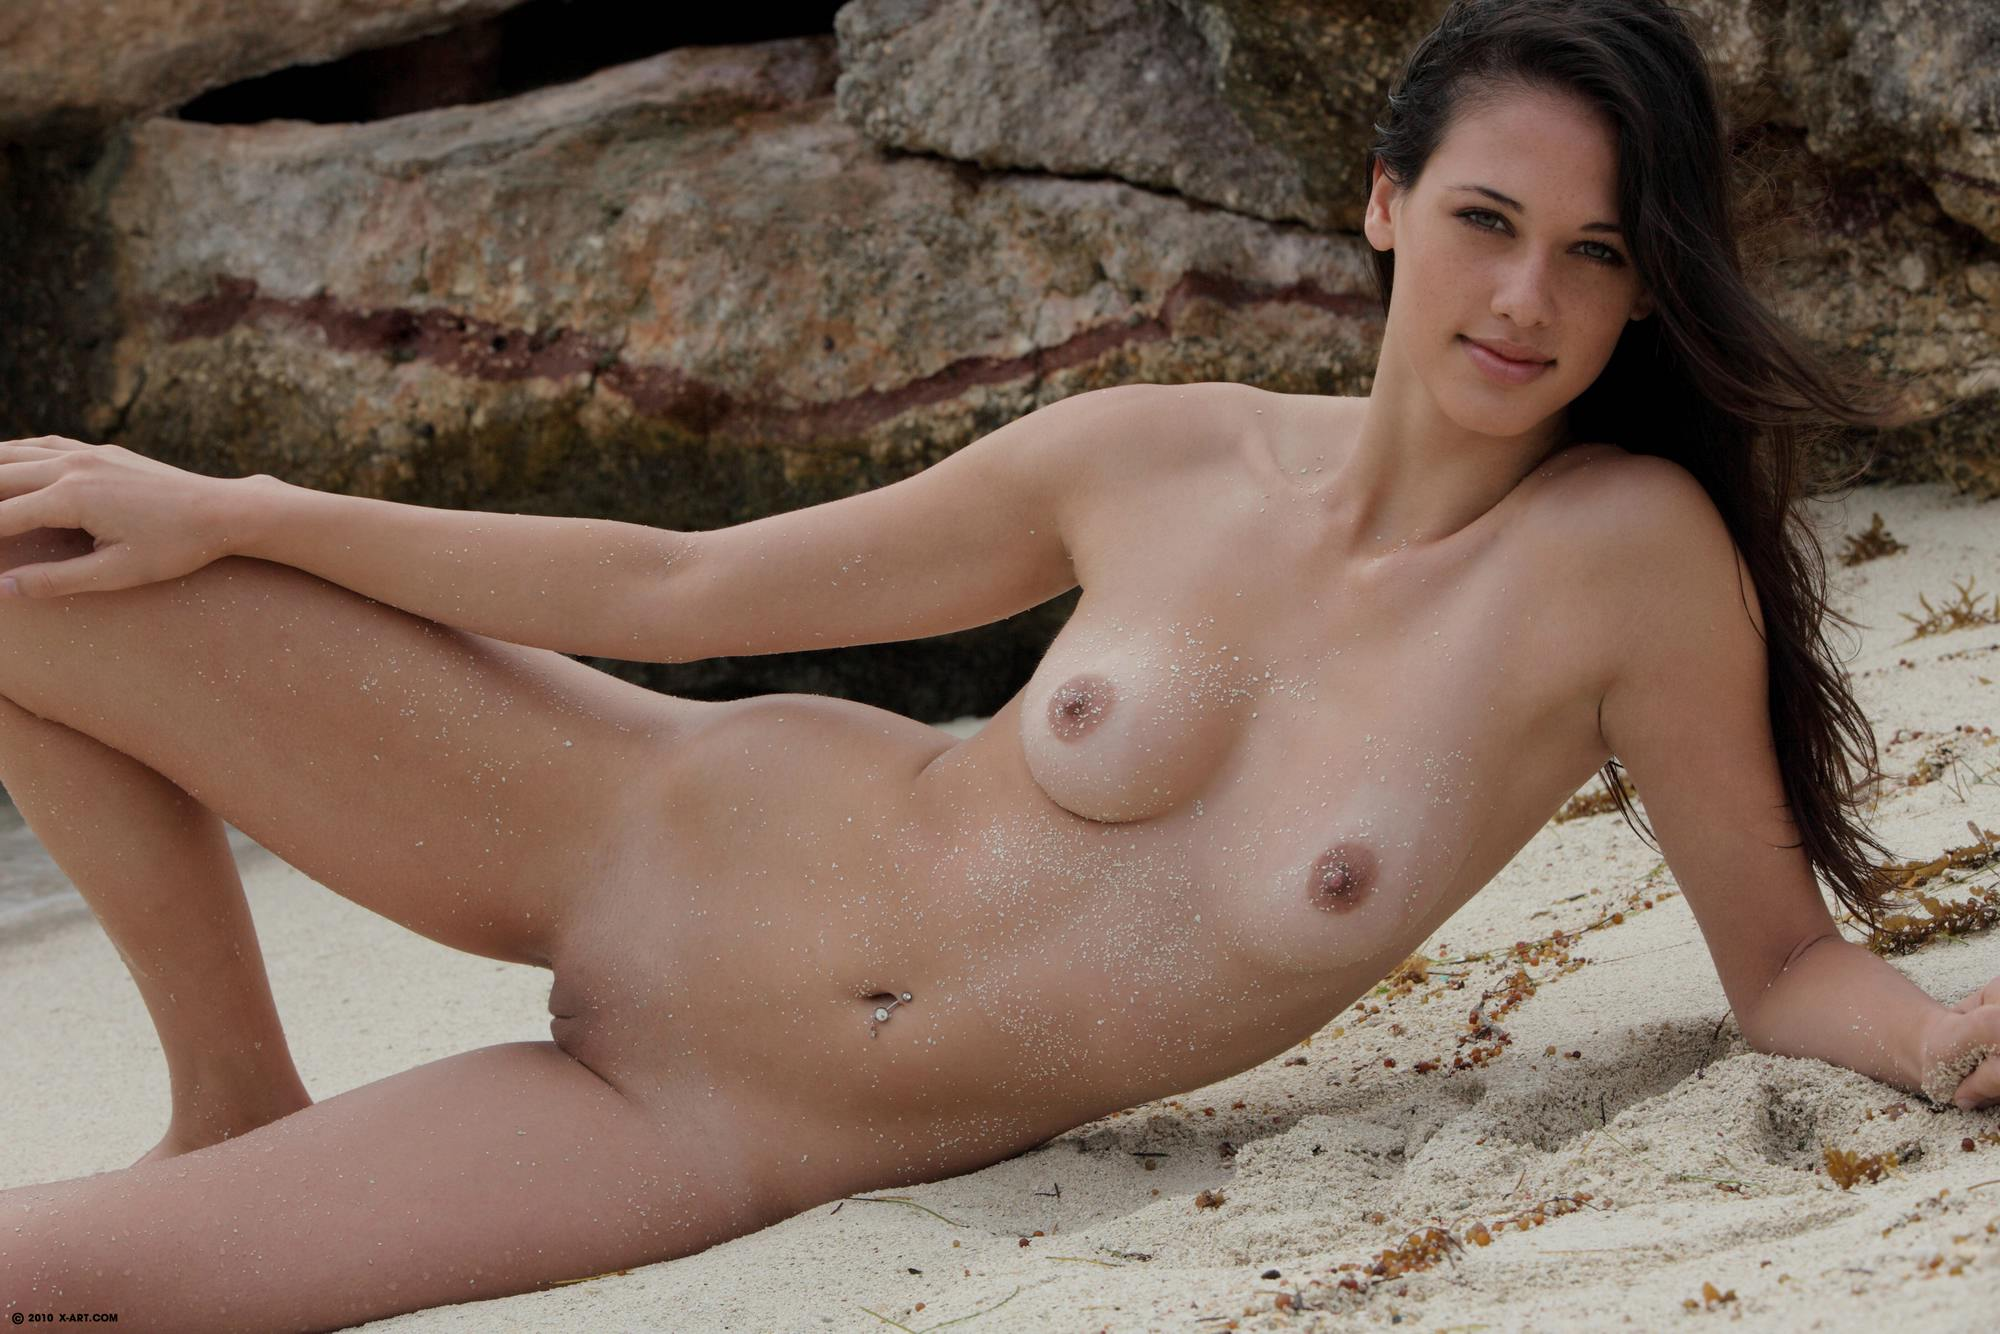 beautiful nude women images